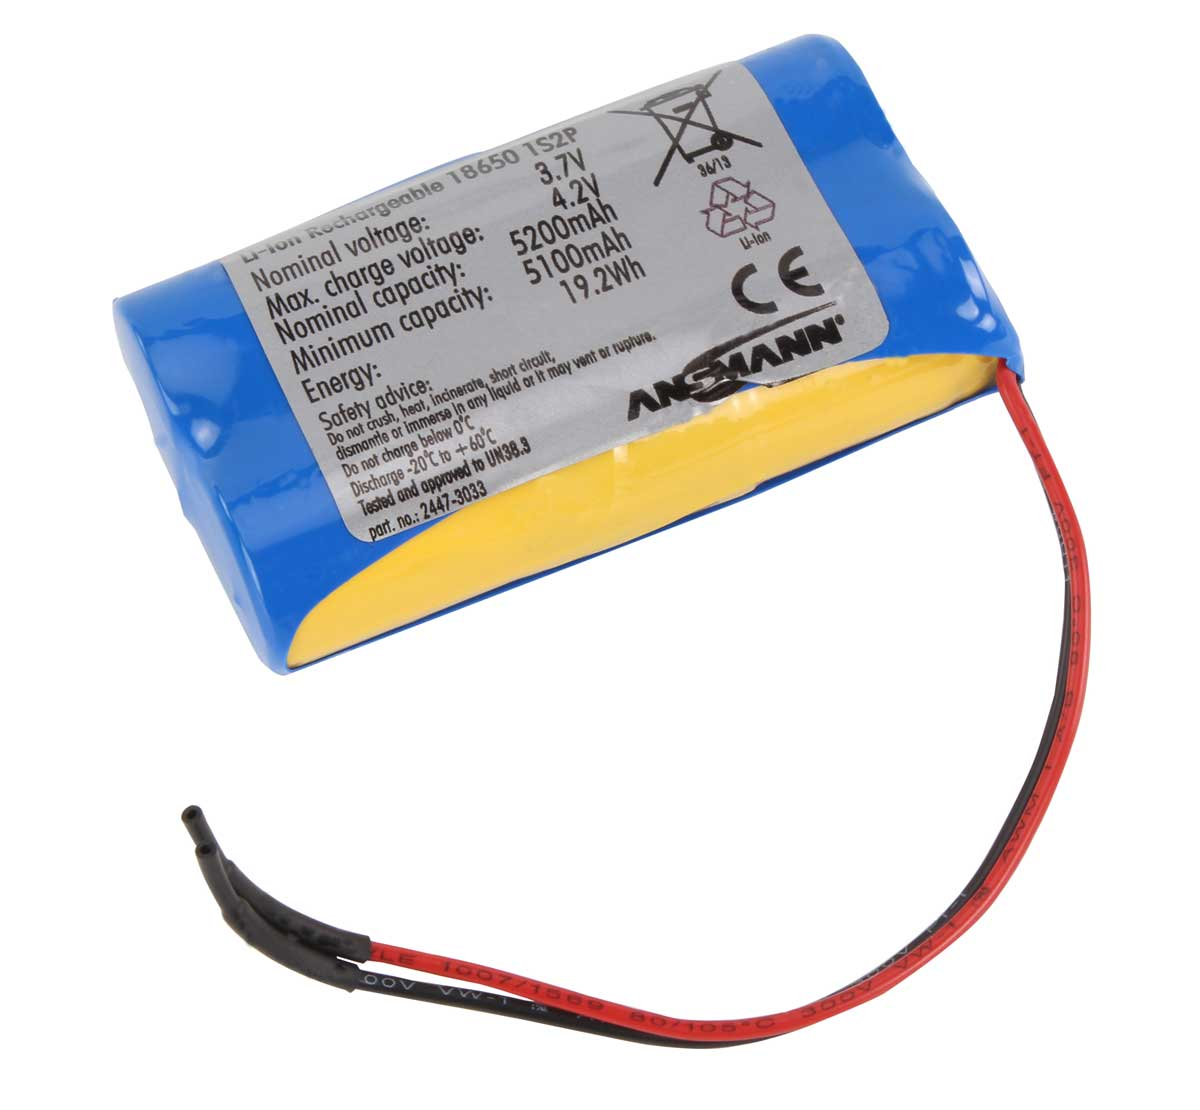 Ansmann Industrial 1S2P 3.7V 5200mAh Rechargeable Li-ion Battery Pack